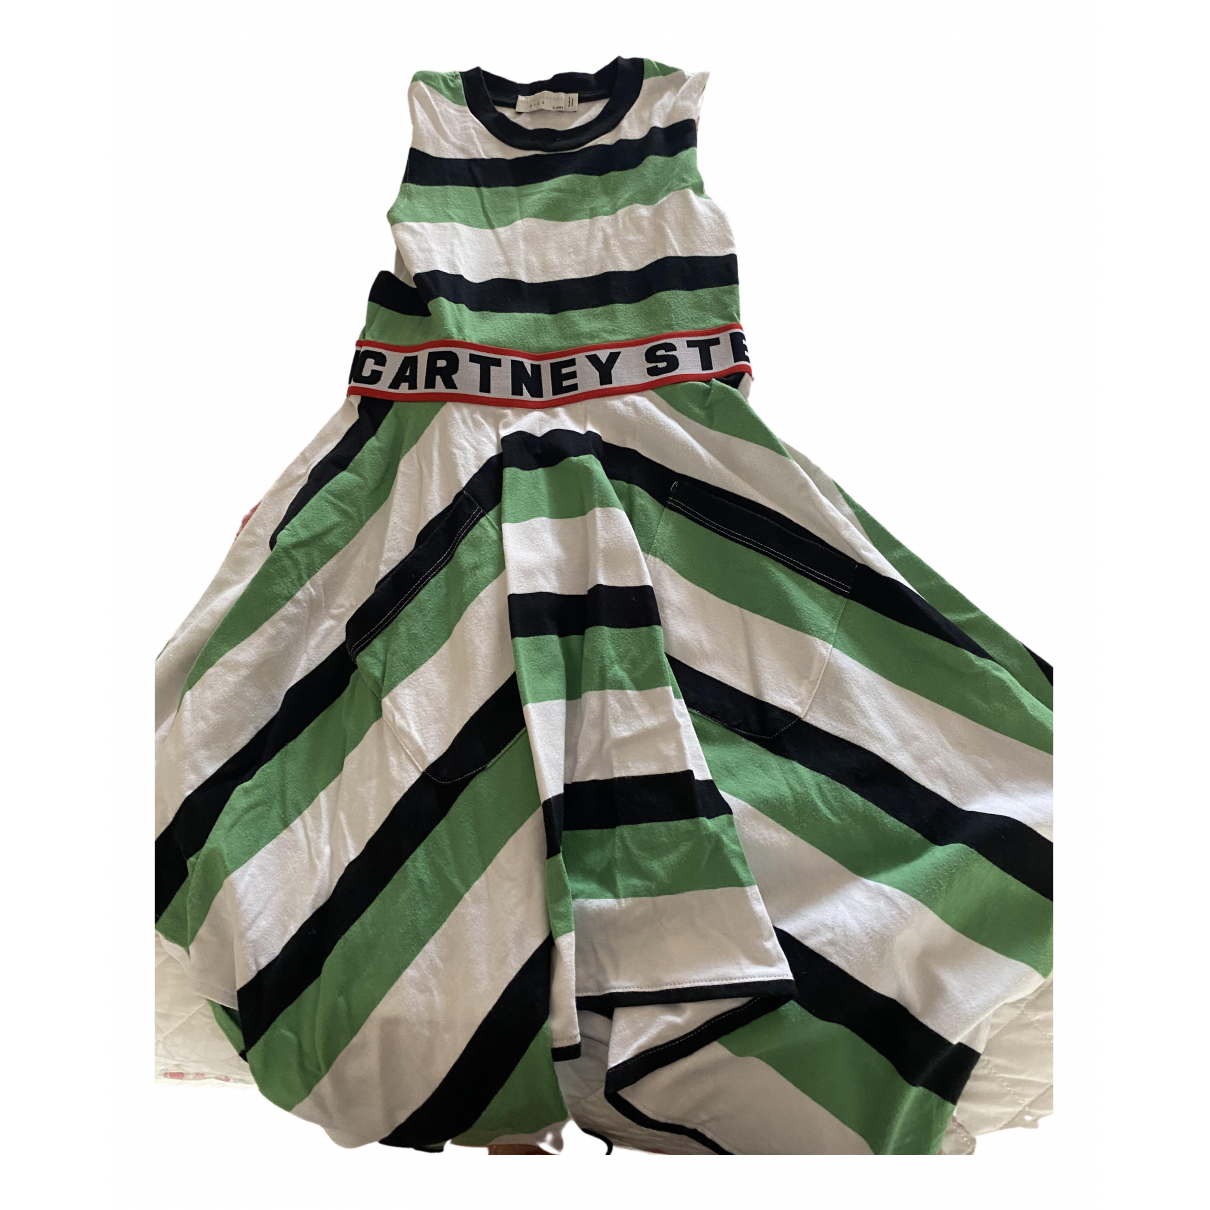 Stella Mccartney N Green Cotton dress for Kids 6 years - up to 114cm FR